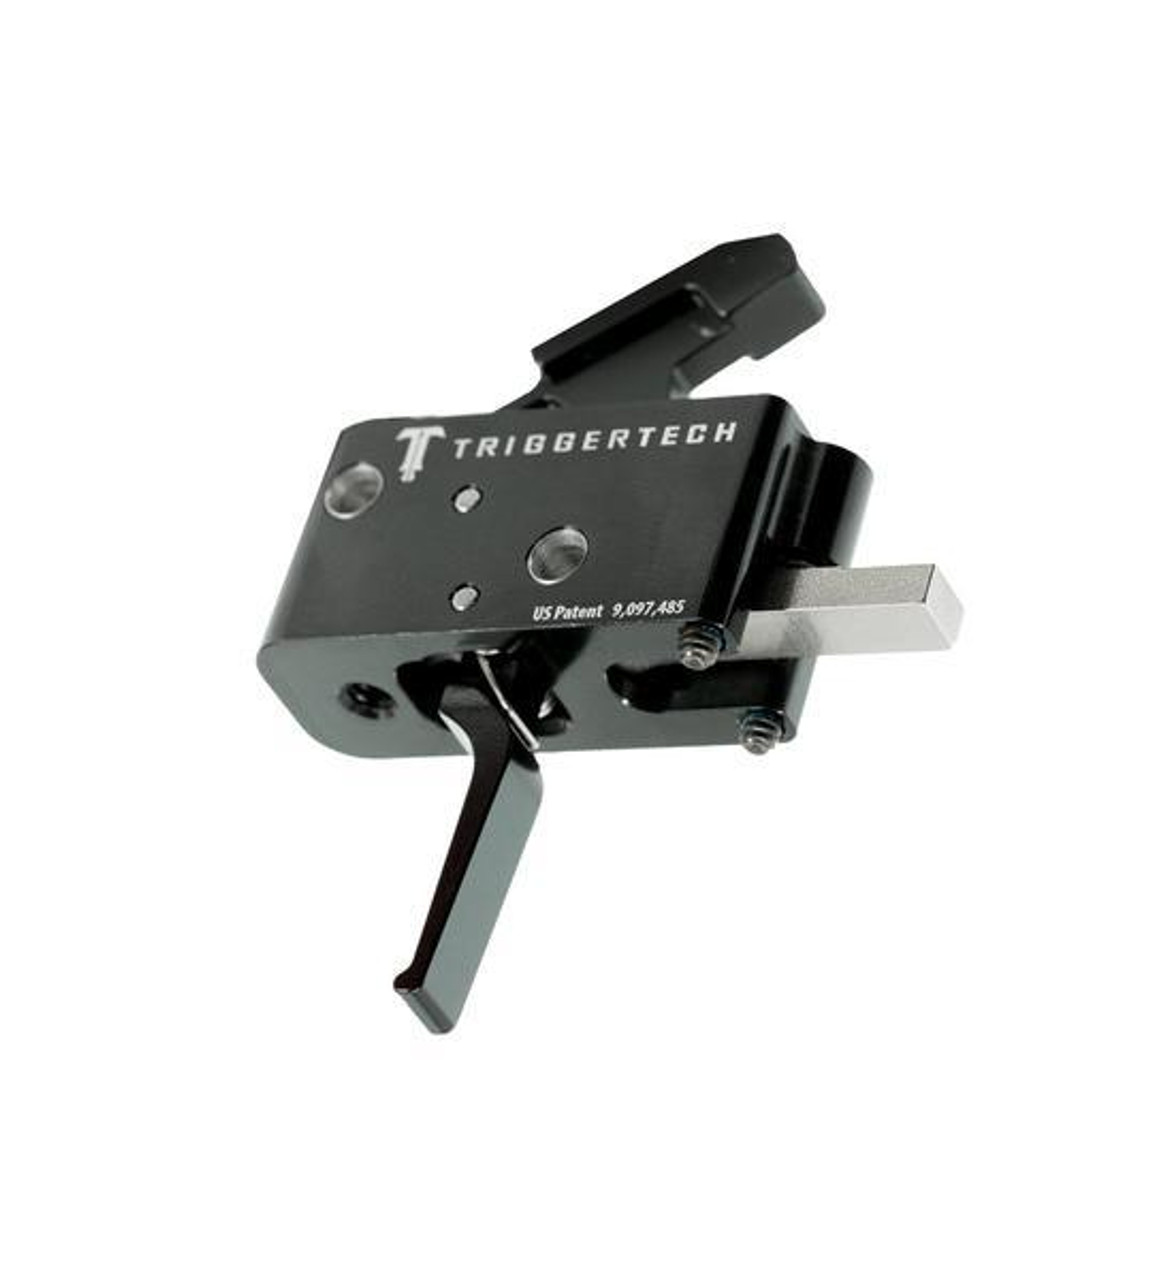 TriggerTech Adaptable AR Primary Trigger - Flat / Black PVD